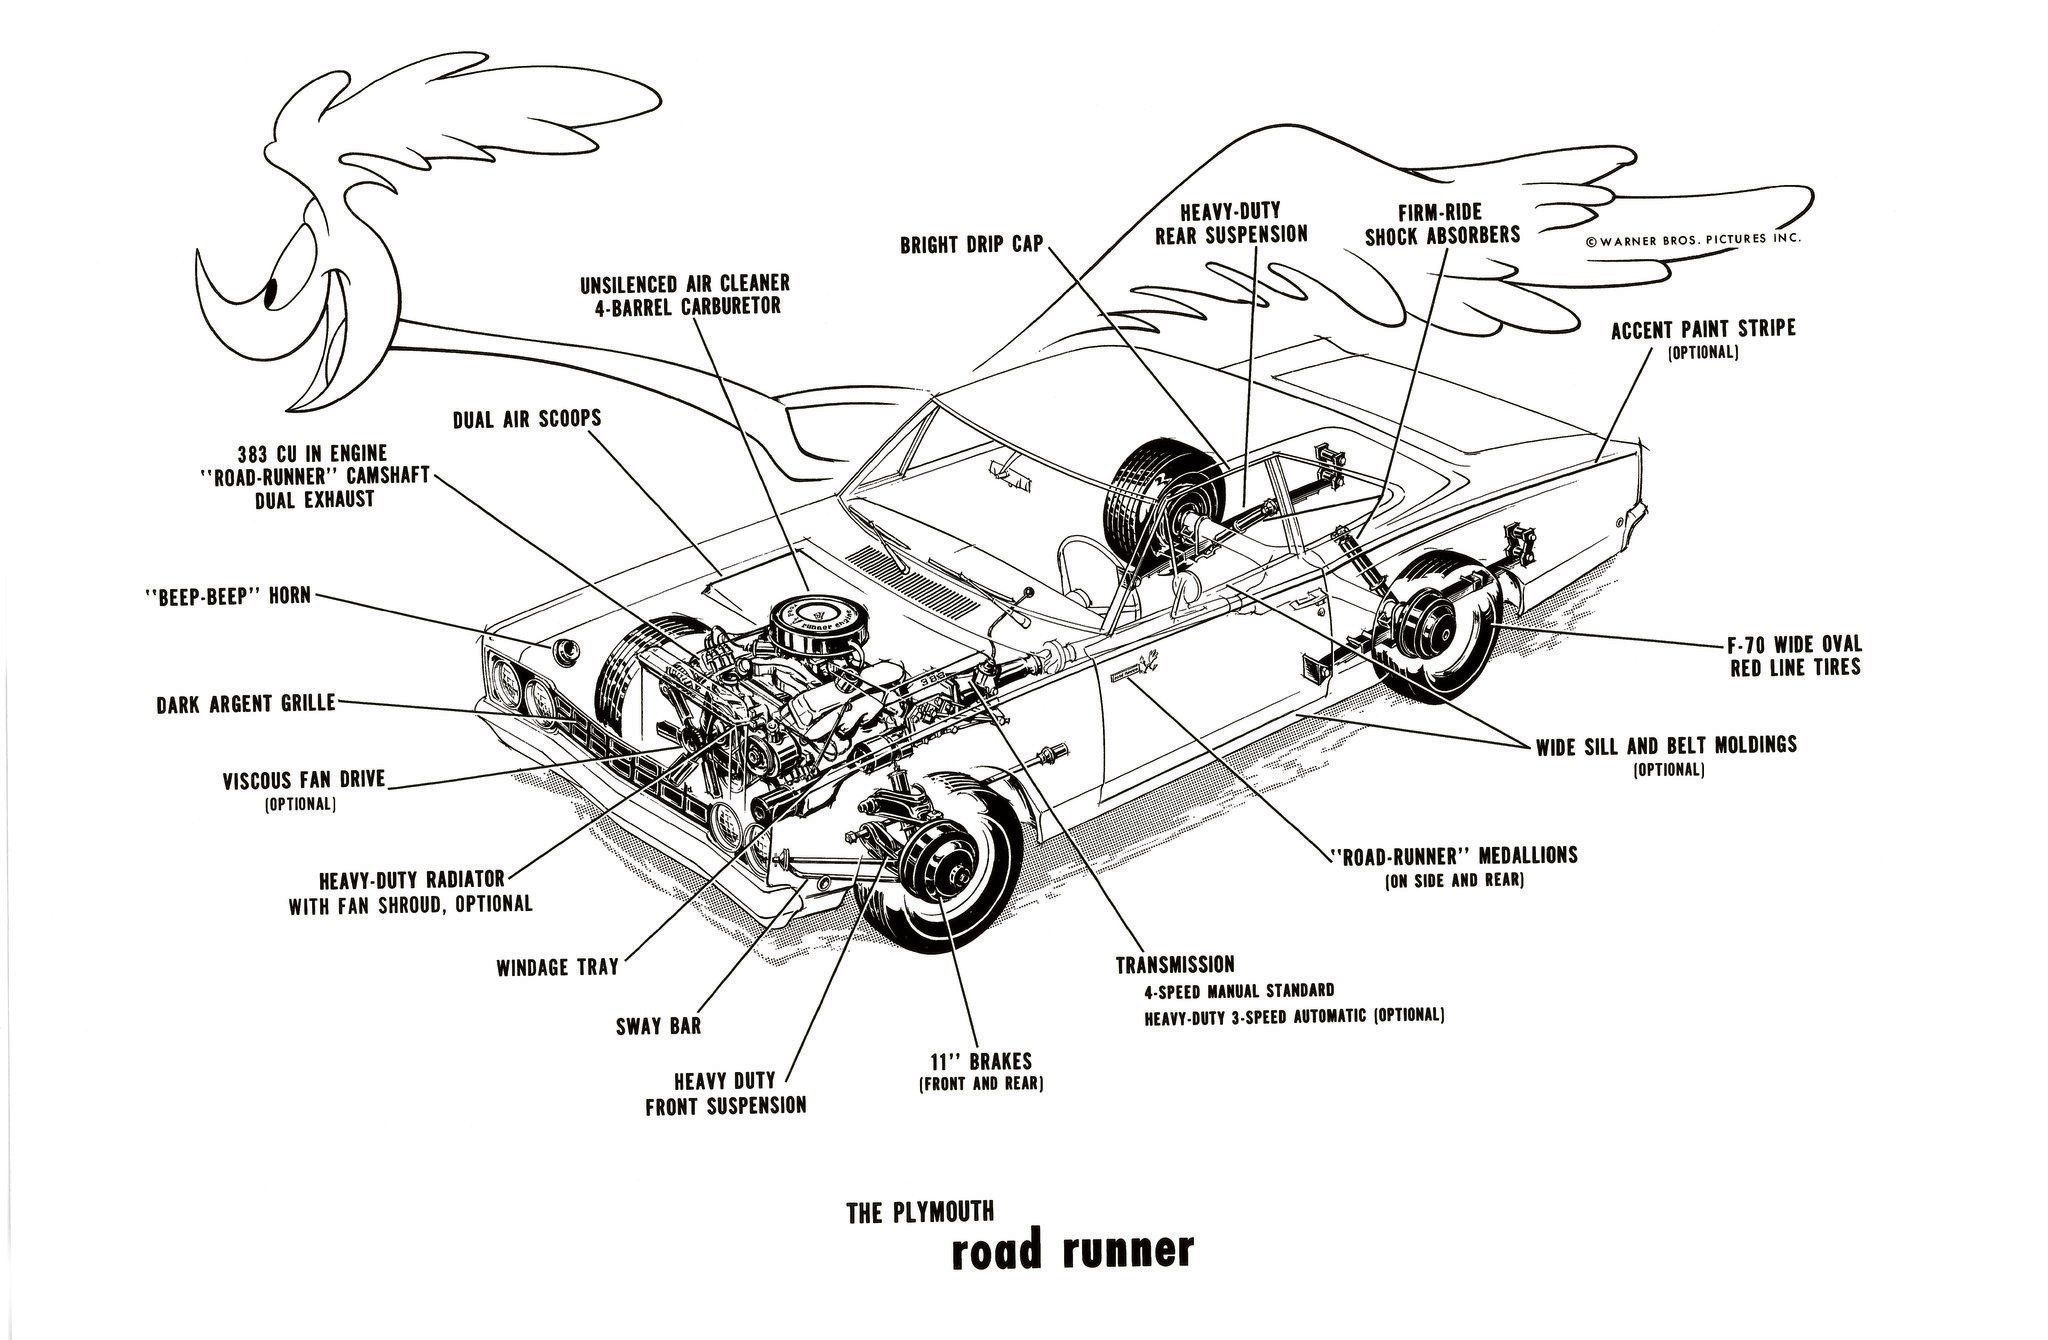 Diagram Wiring Diagram For 1968 Plymouth Roadrunner Full Version Hd Quality Plymouth Roadrunner Tinydiagrams Creasitionline It